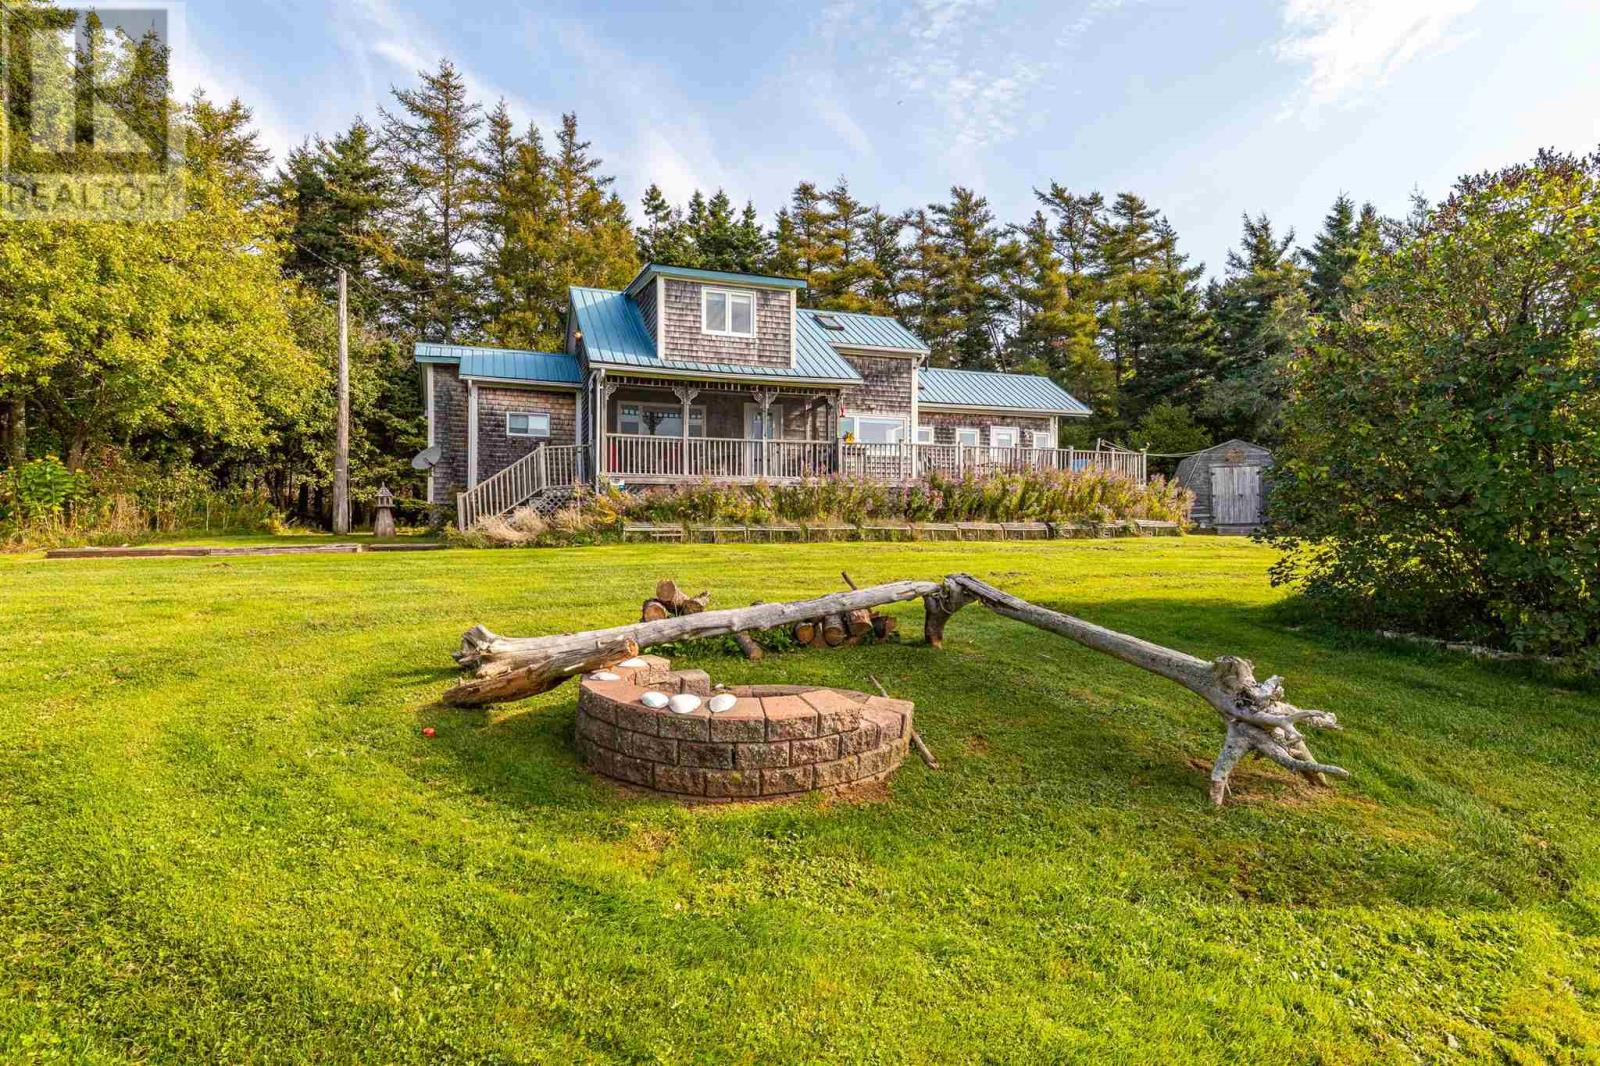 294 Bruce Point Road294 Bruce Point Road, Launching, Prince Edward Island C0A1G0, 3 Bedrooms Bedrooms, ,2 BathroomsBathrooms,Recreational,For Sale,294 Bruce Point Road,202124900